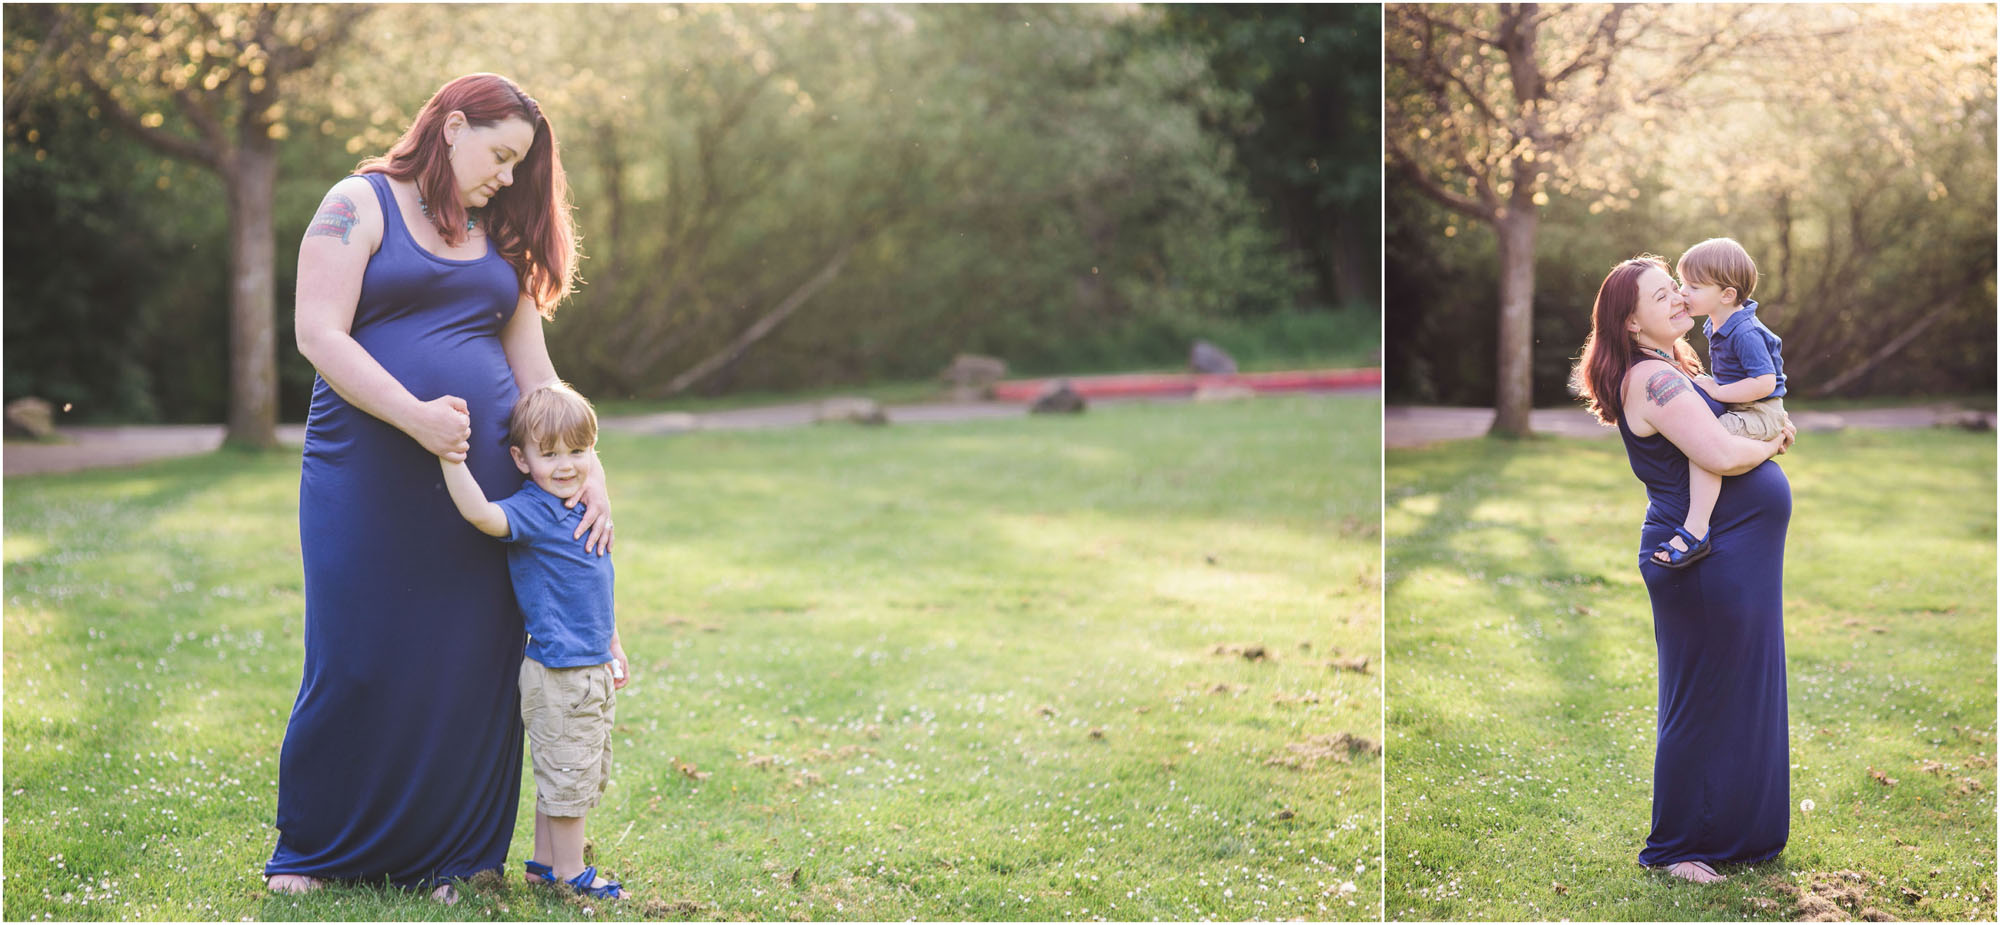 ashley vos photography seattle family maternity photographer_0002.jpg